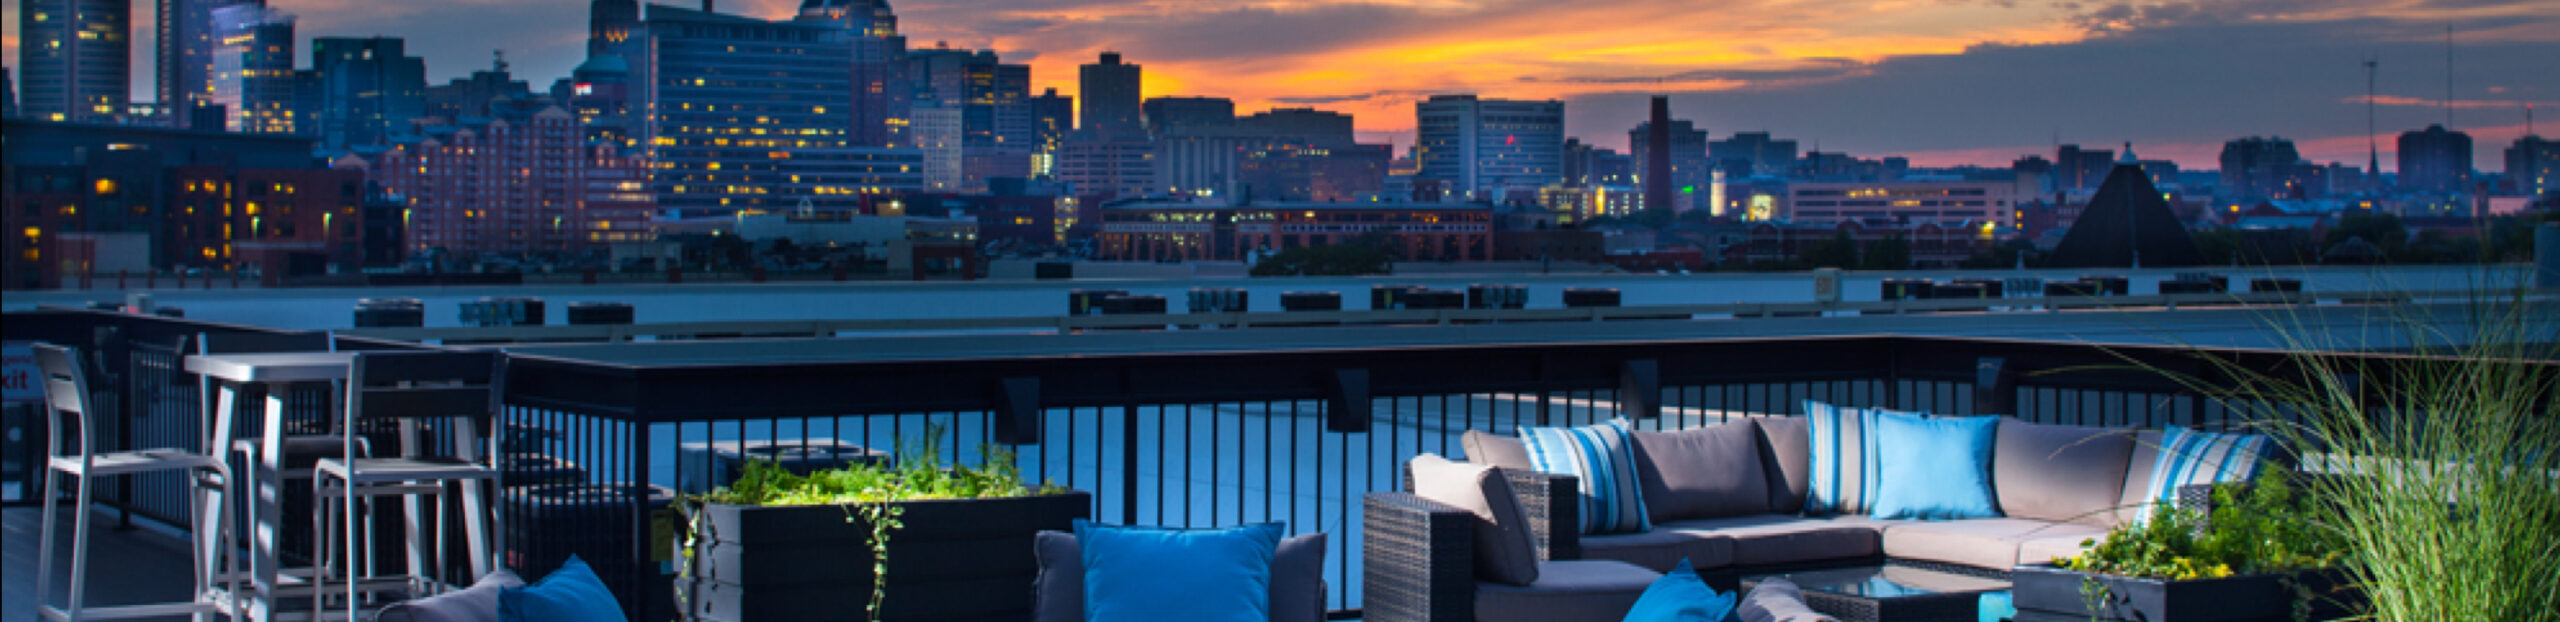 A skyline view of the city from the patio at a Dolben property